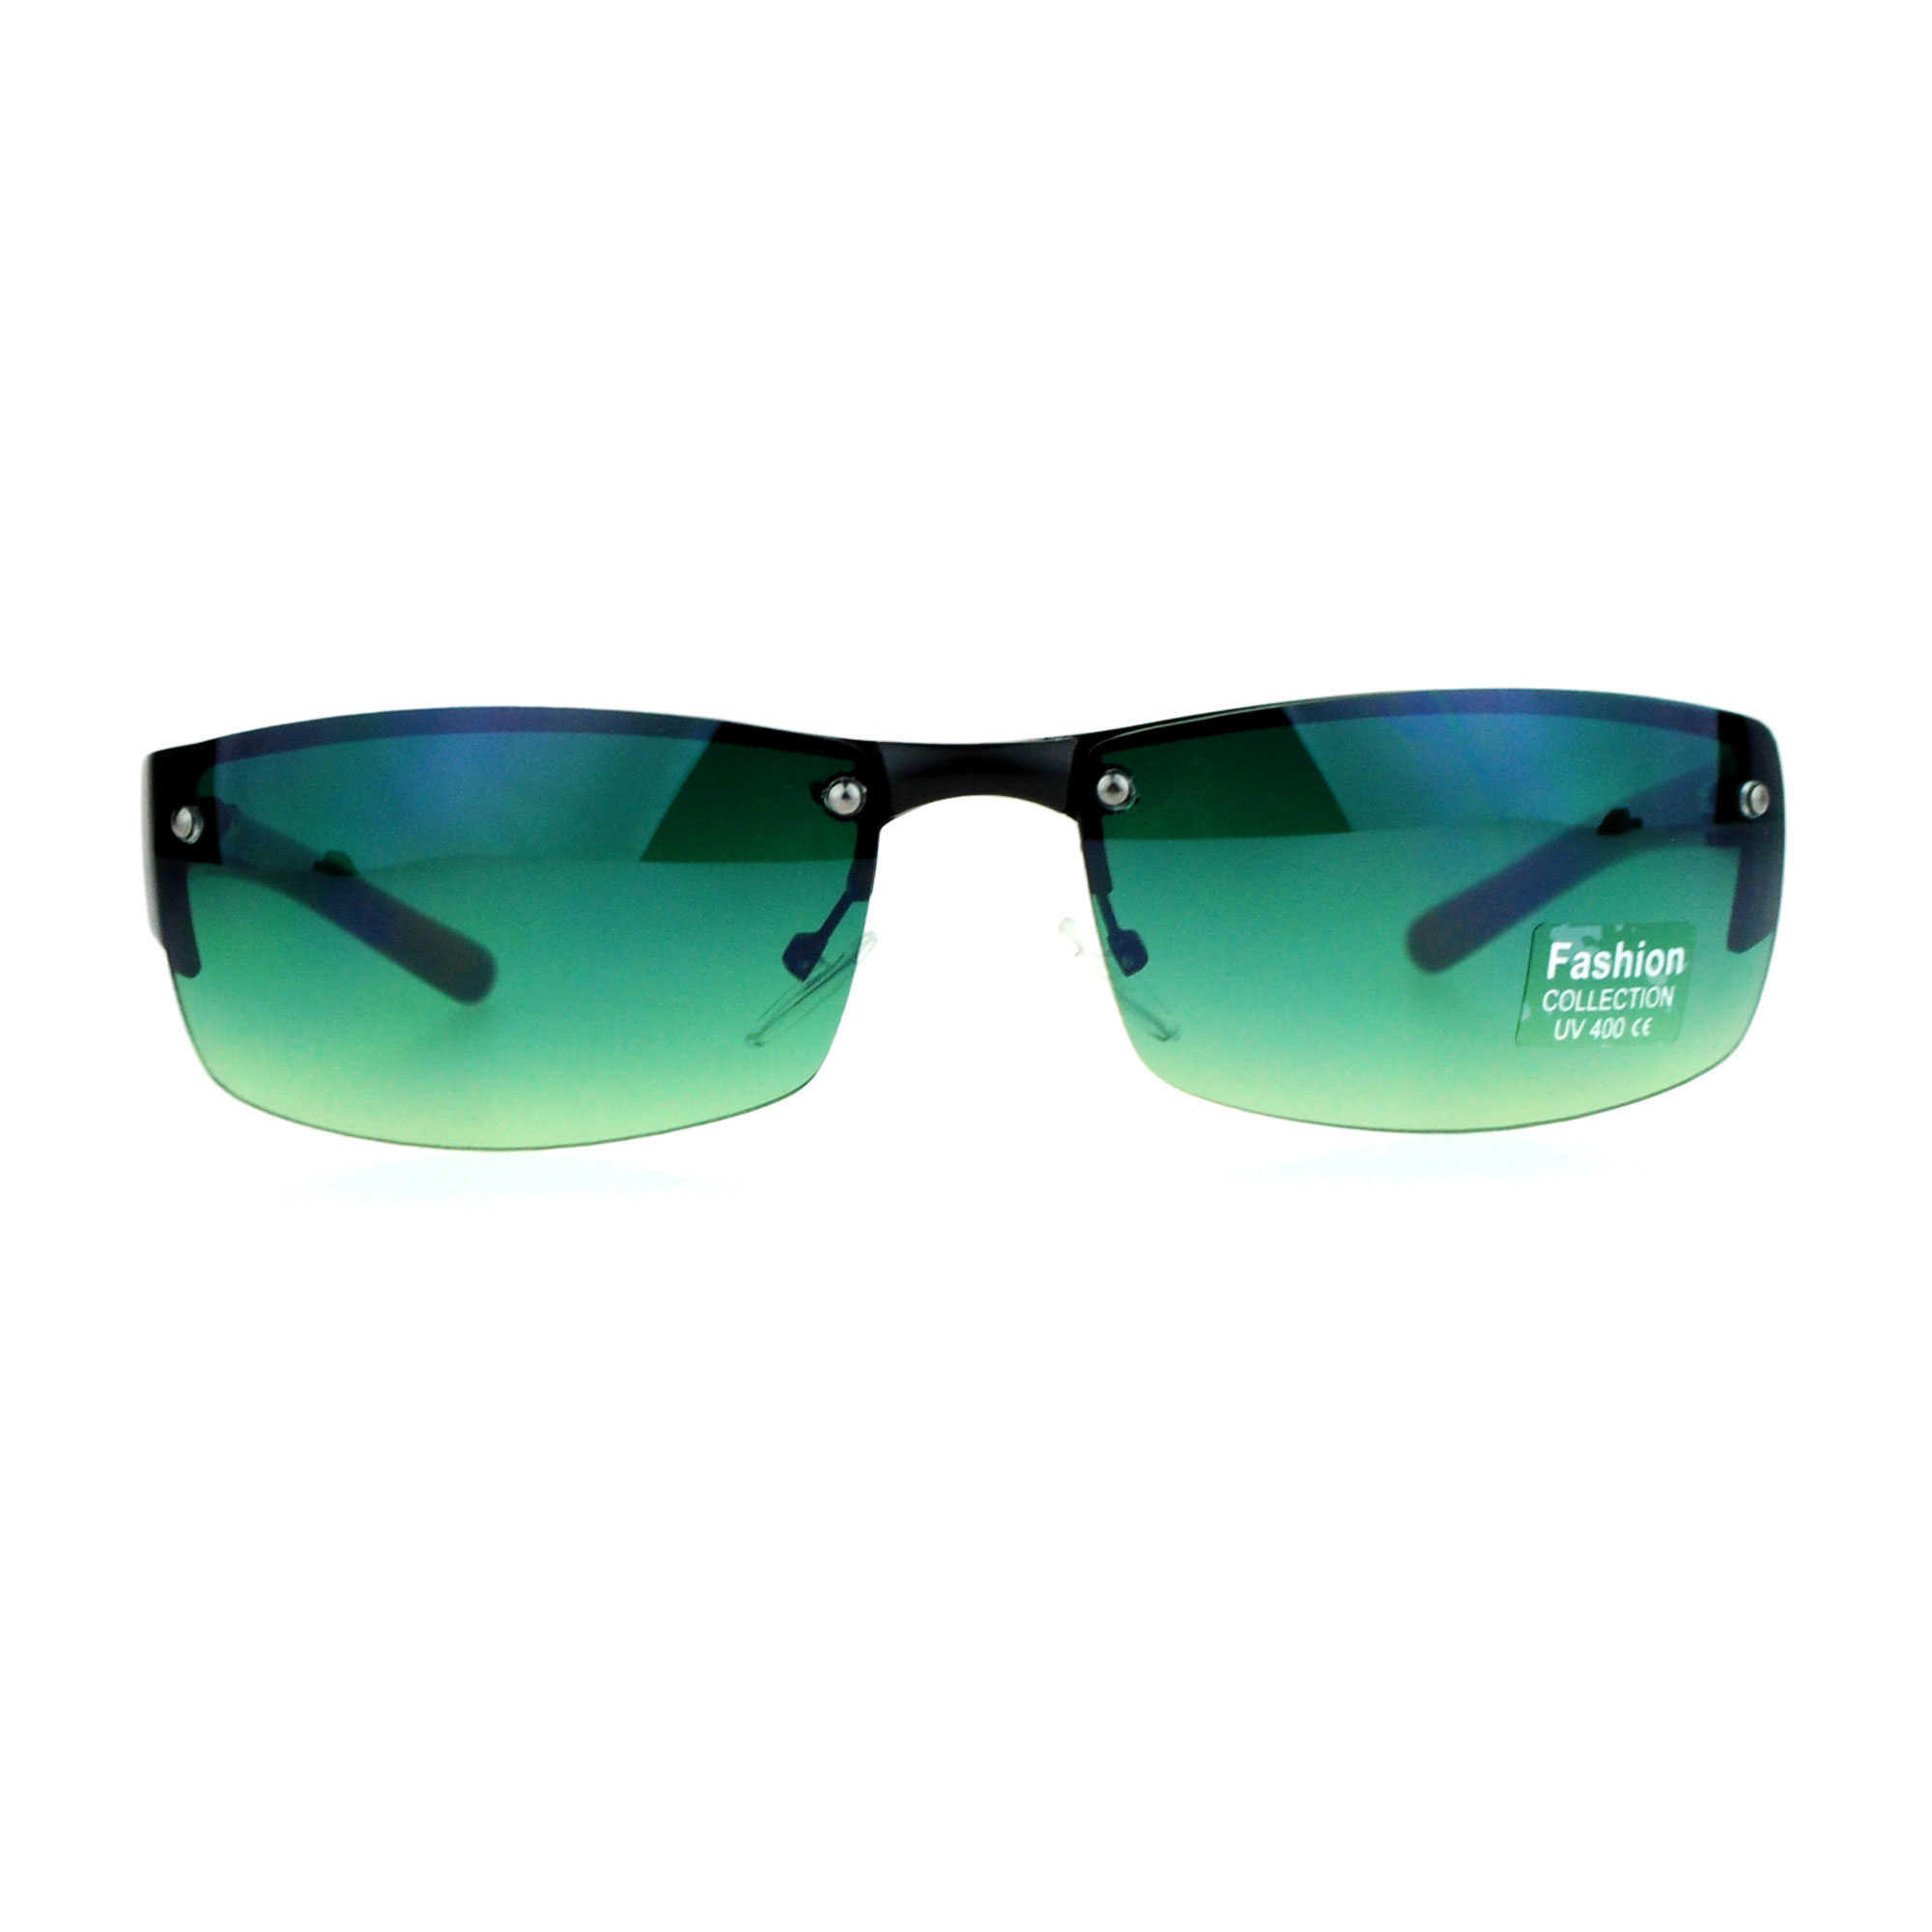 Cheap fashion sunglasses for men 35